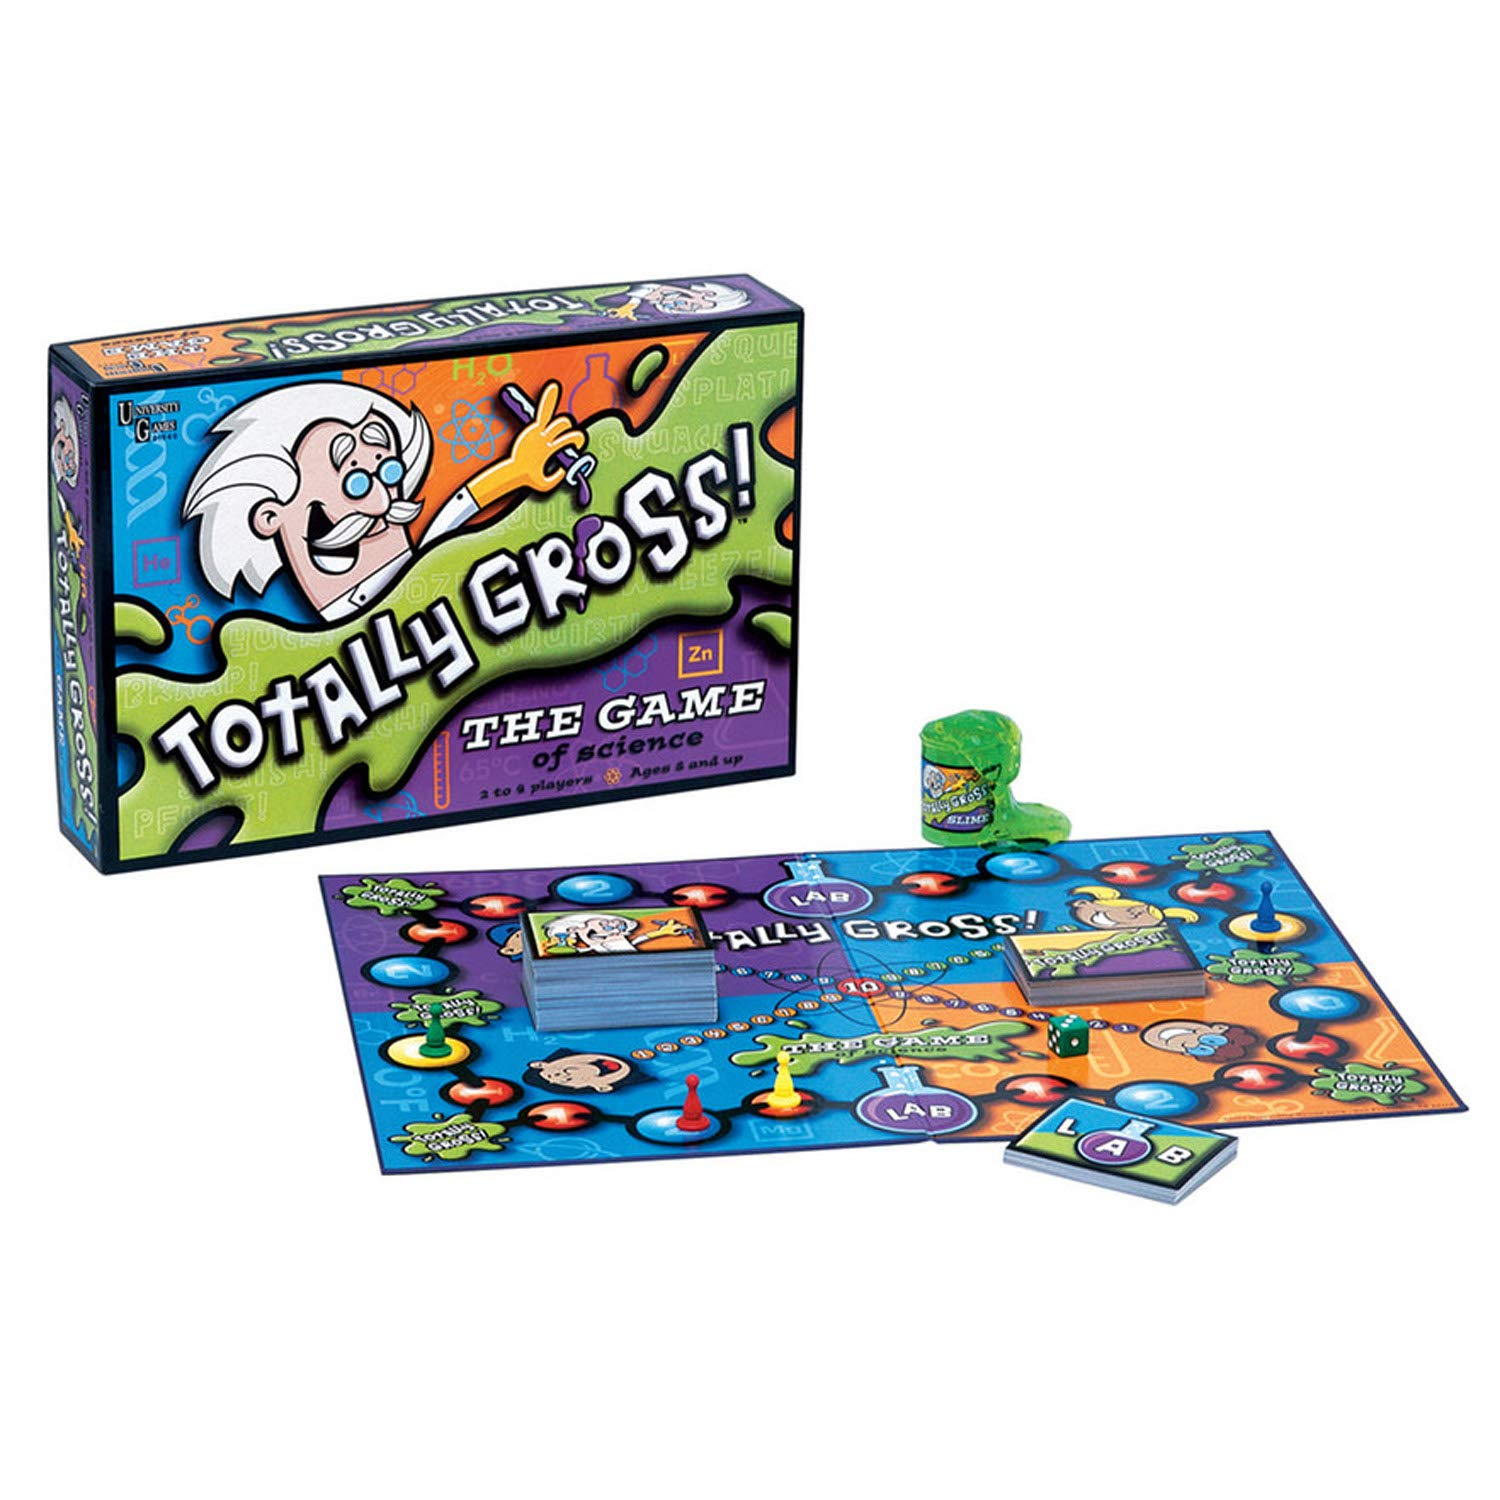 B00006654A Totally Gross: The Game of Science 71y5QDQDGXL